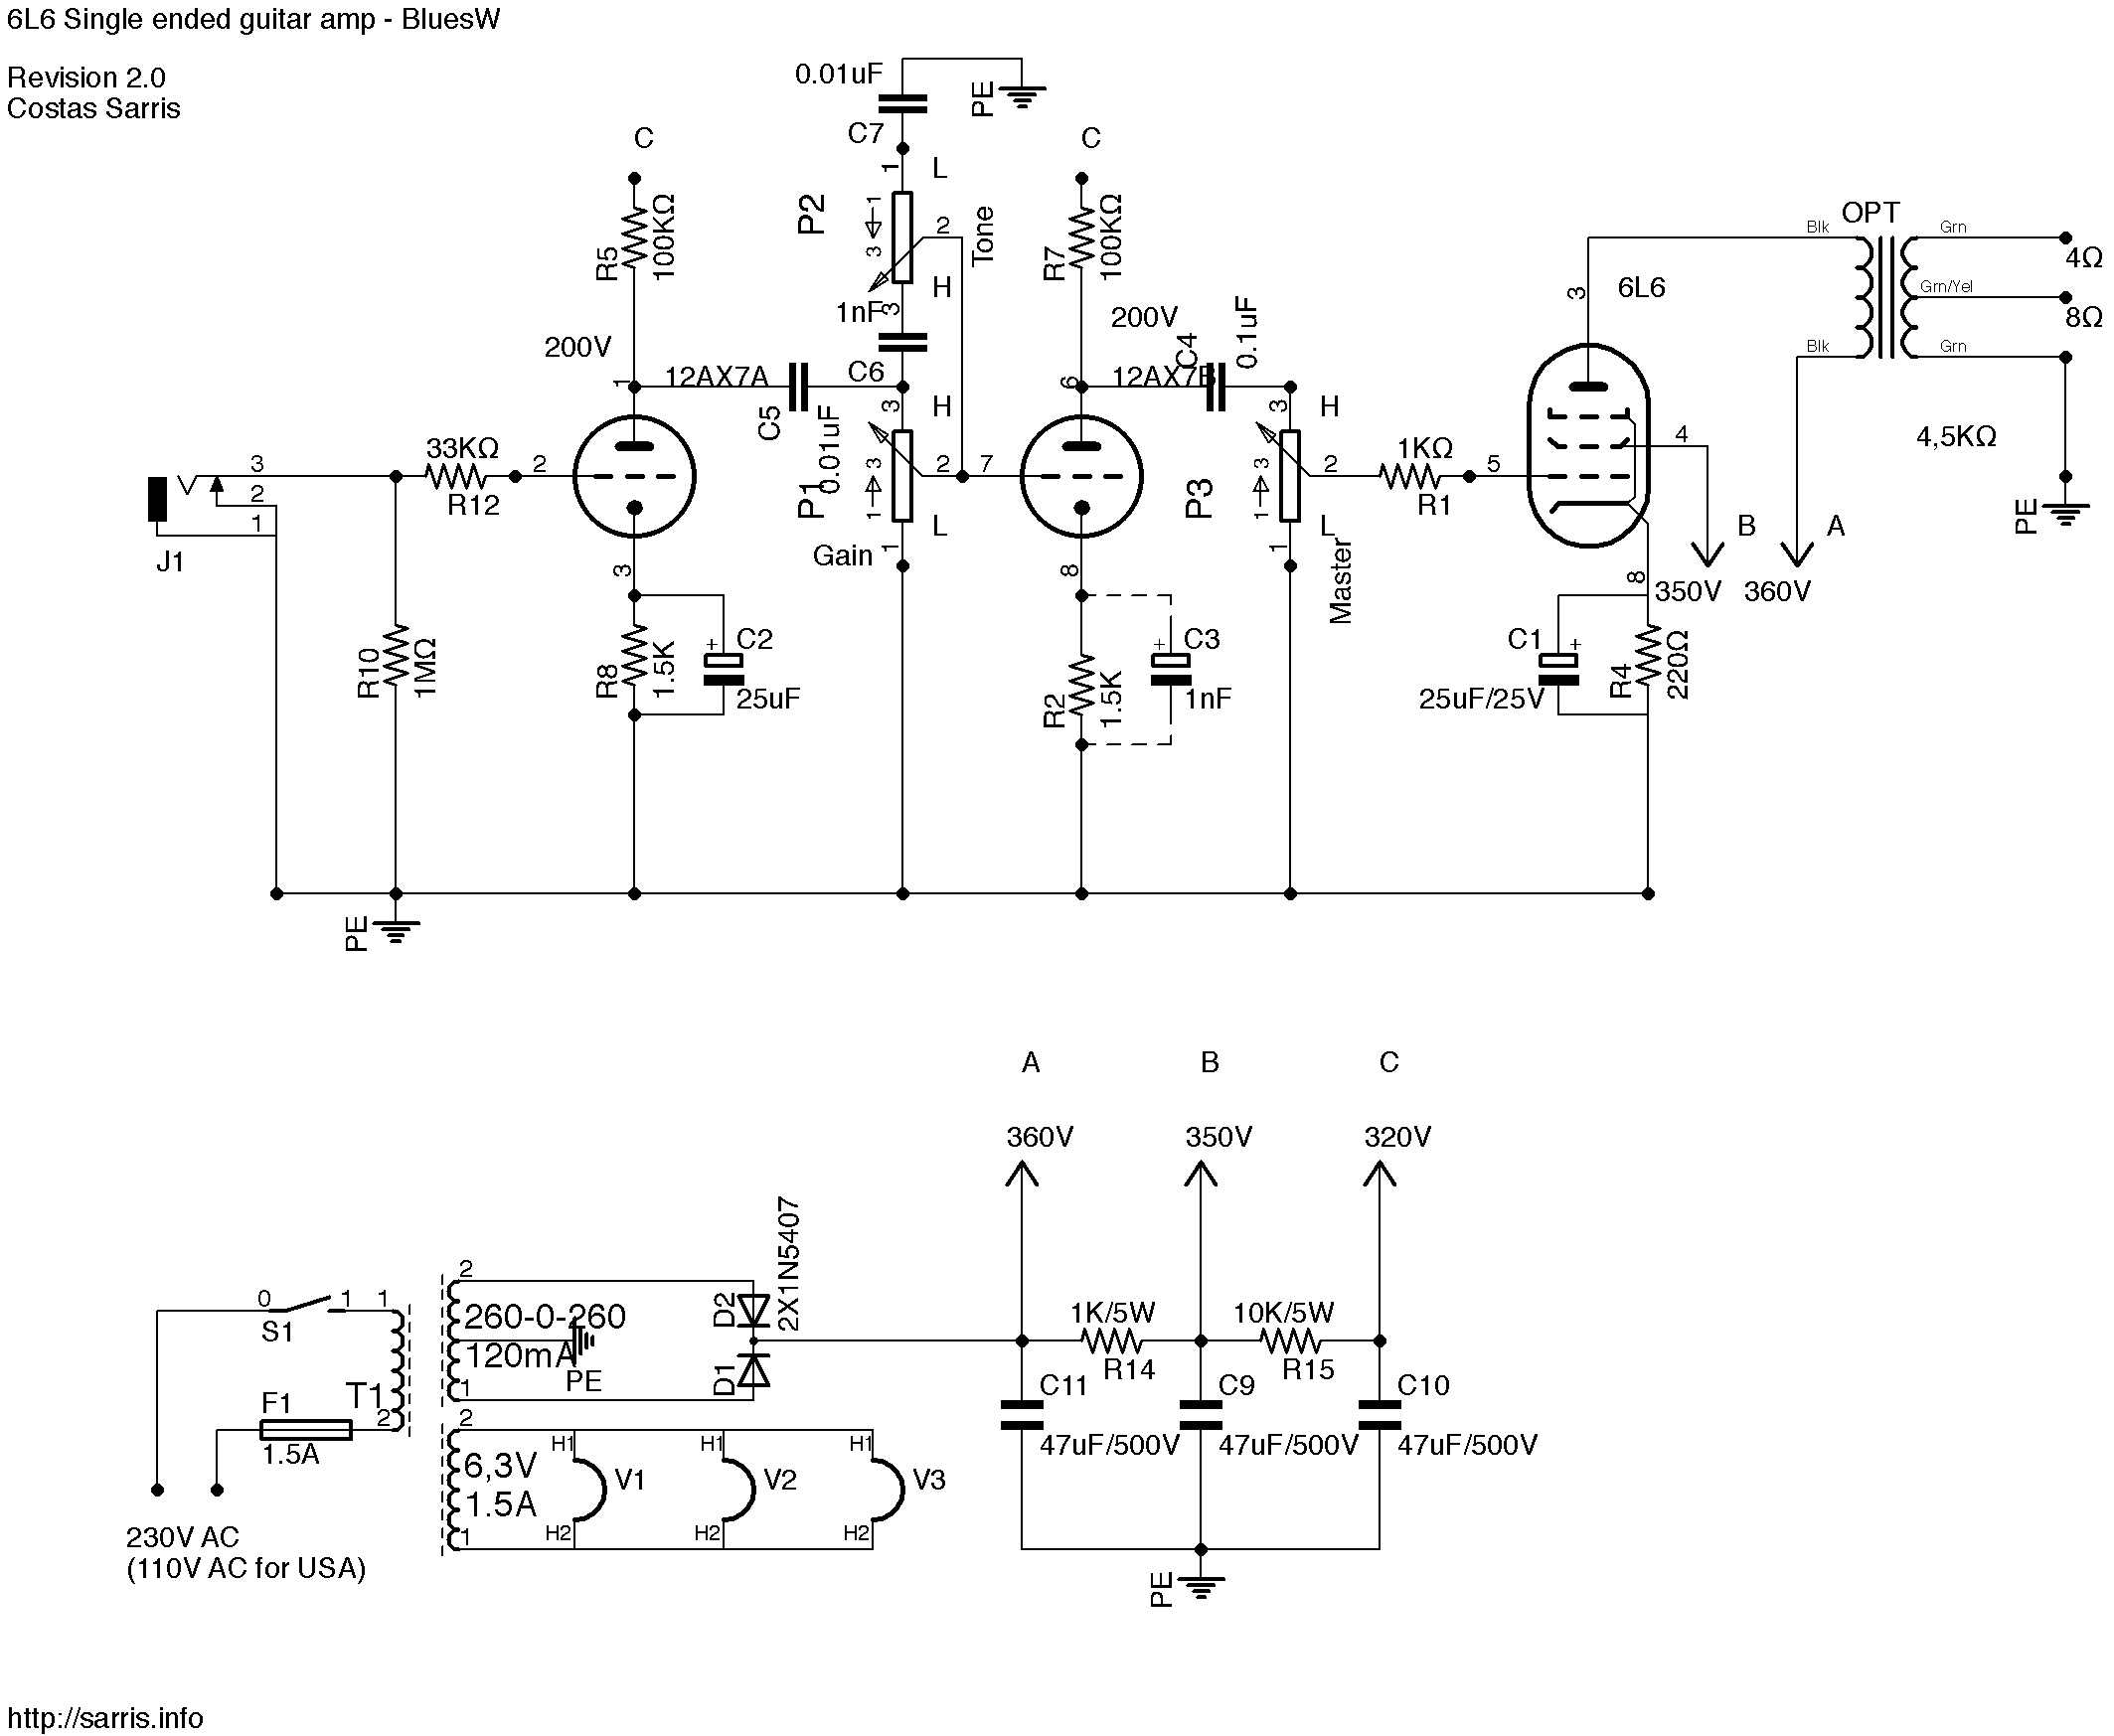 6l6 tube amp schematics